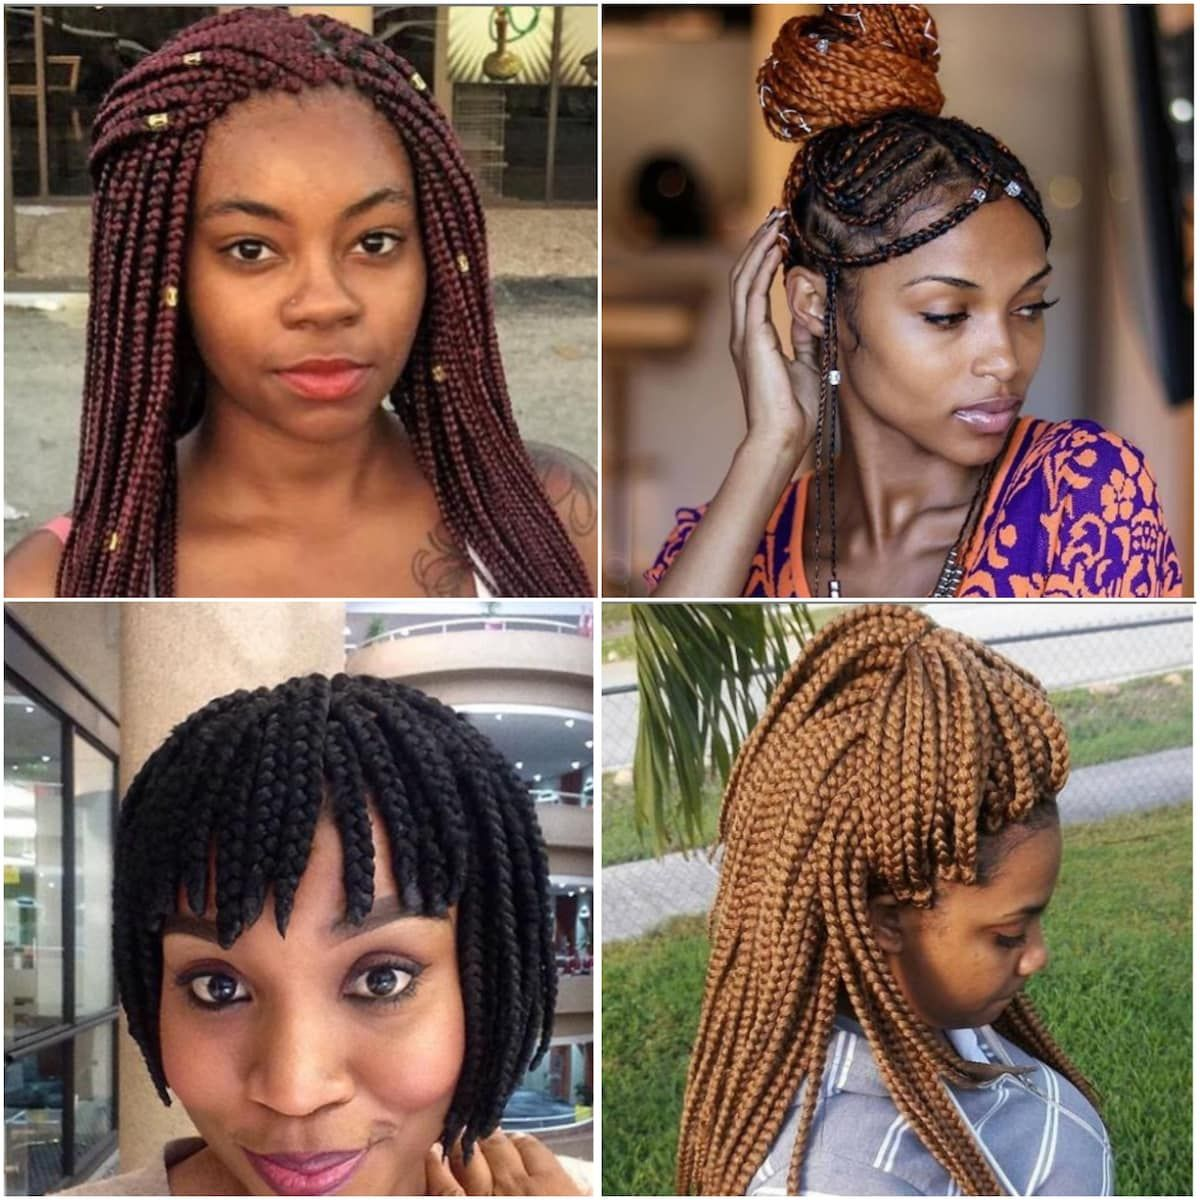 Two Line Cornrows Hairstyle 2020 African Braids Hairstyles Hair Styles New Braided Hairstyles